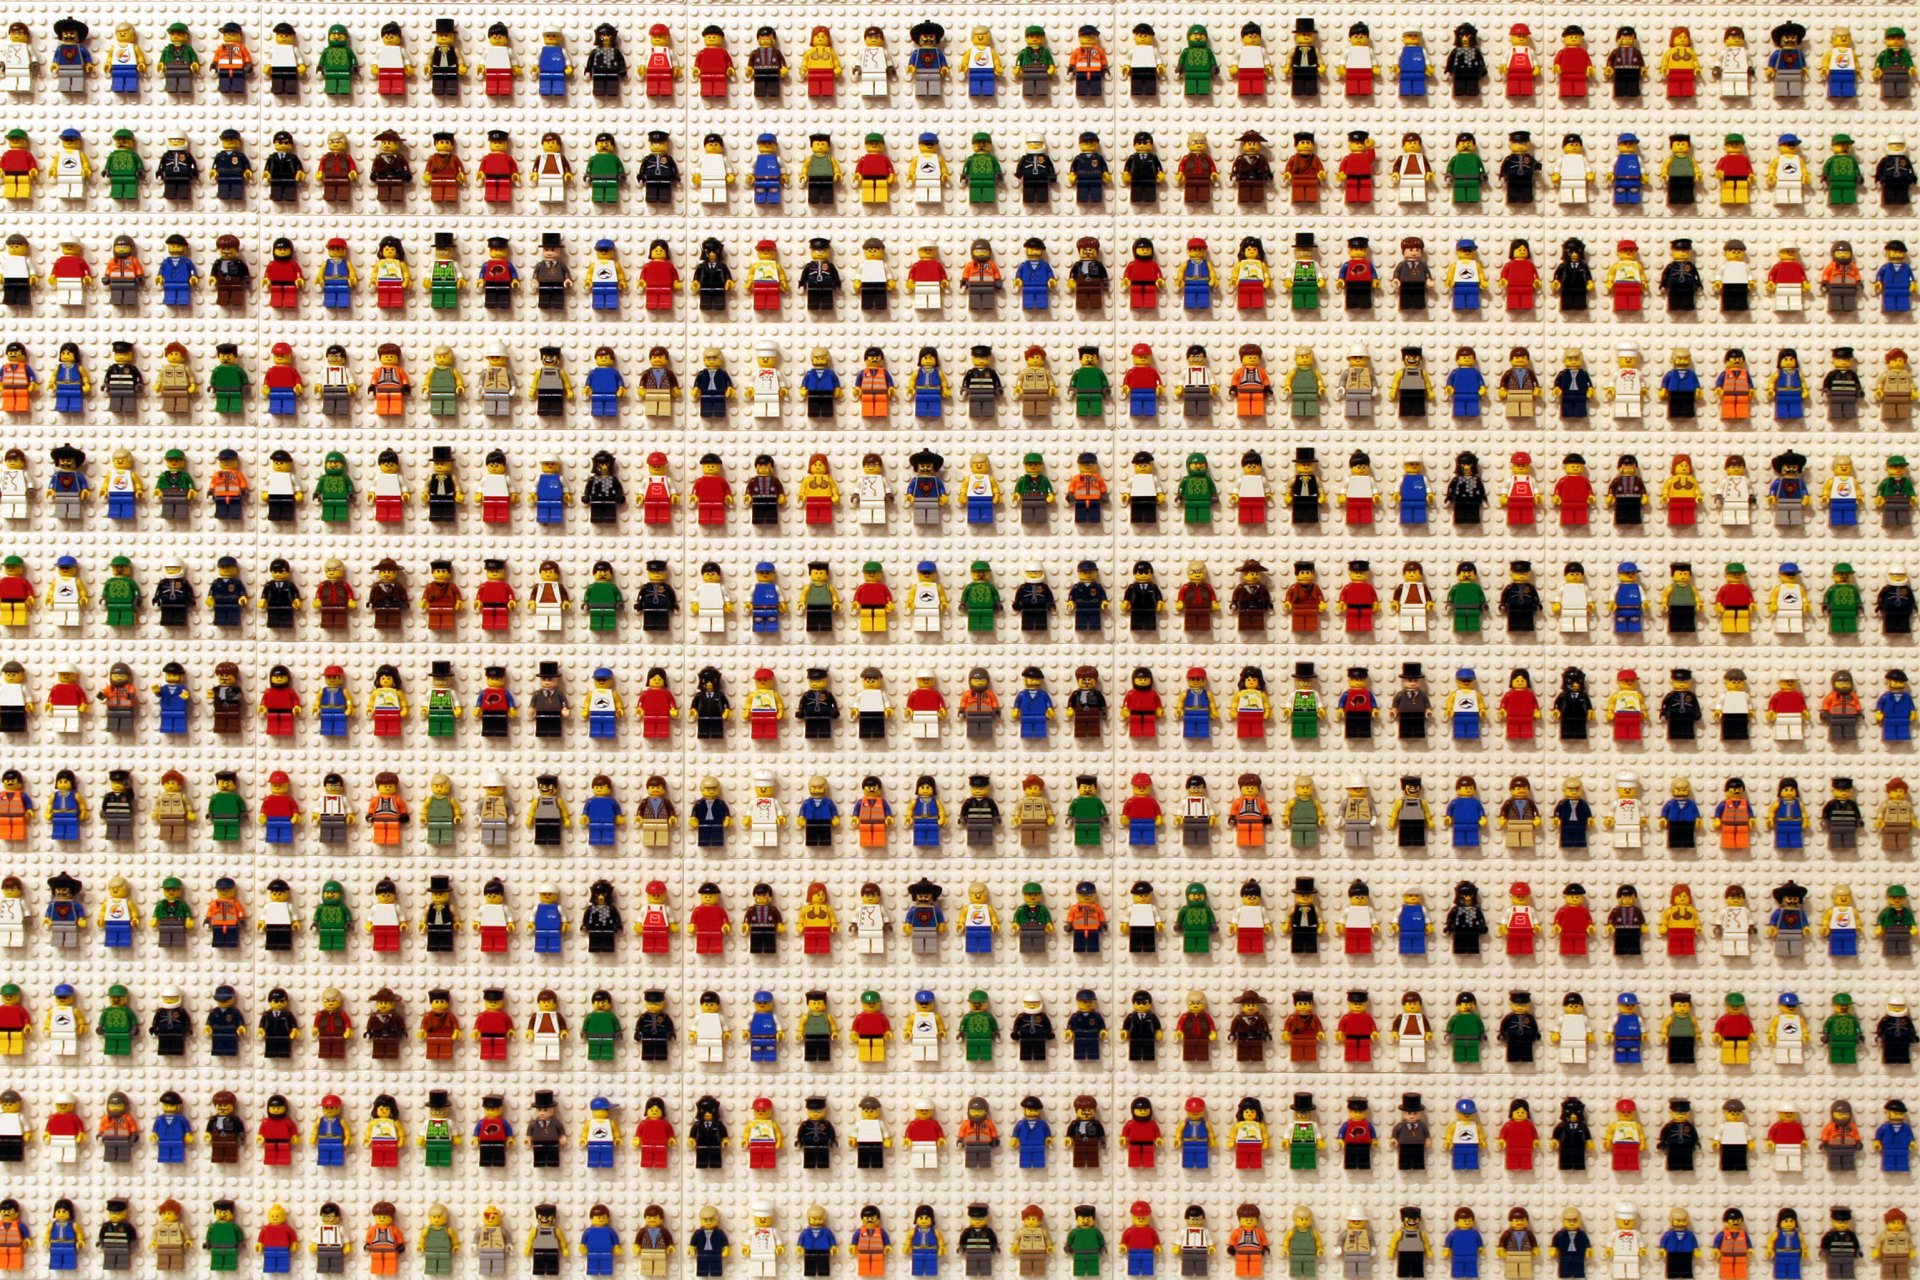 172 Lego Hd Wallpapers Background Images Wallpaper Abyss